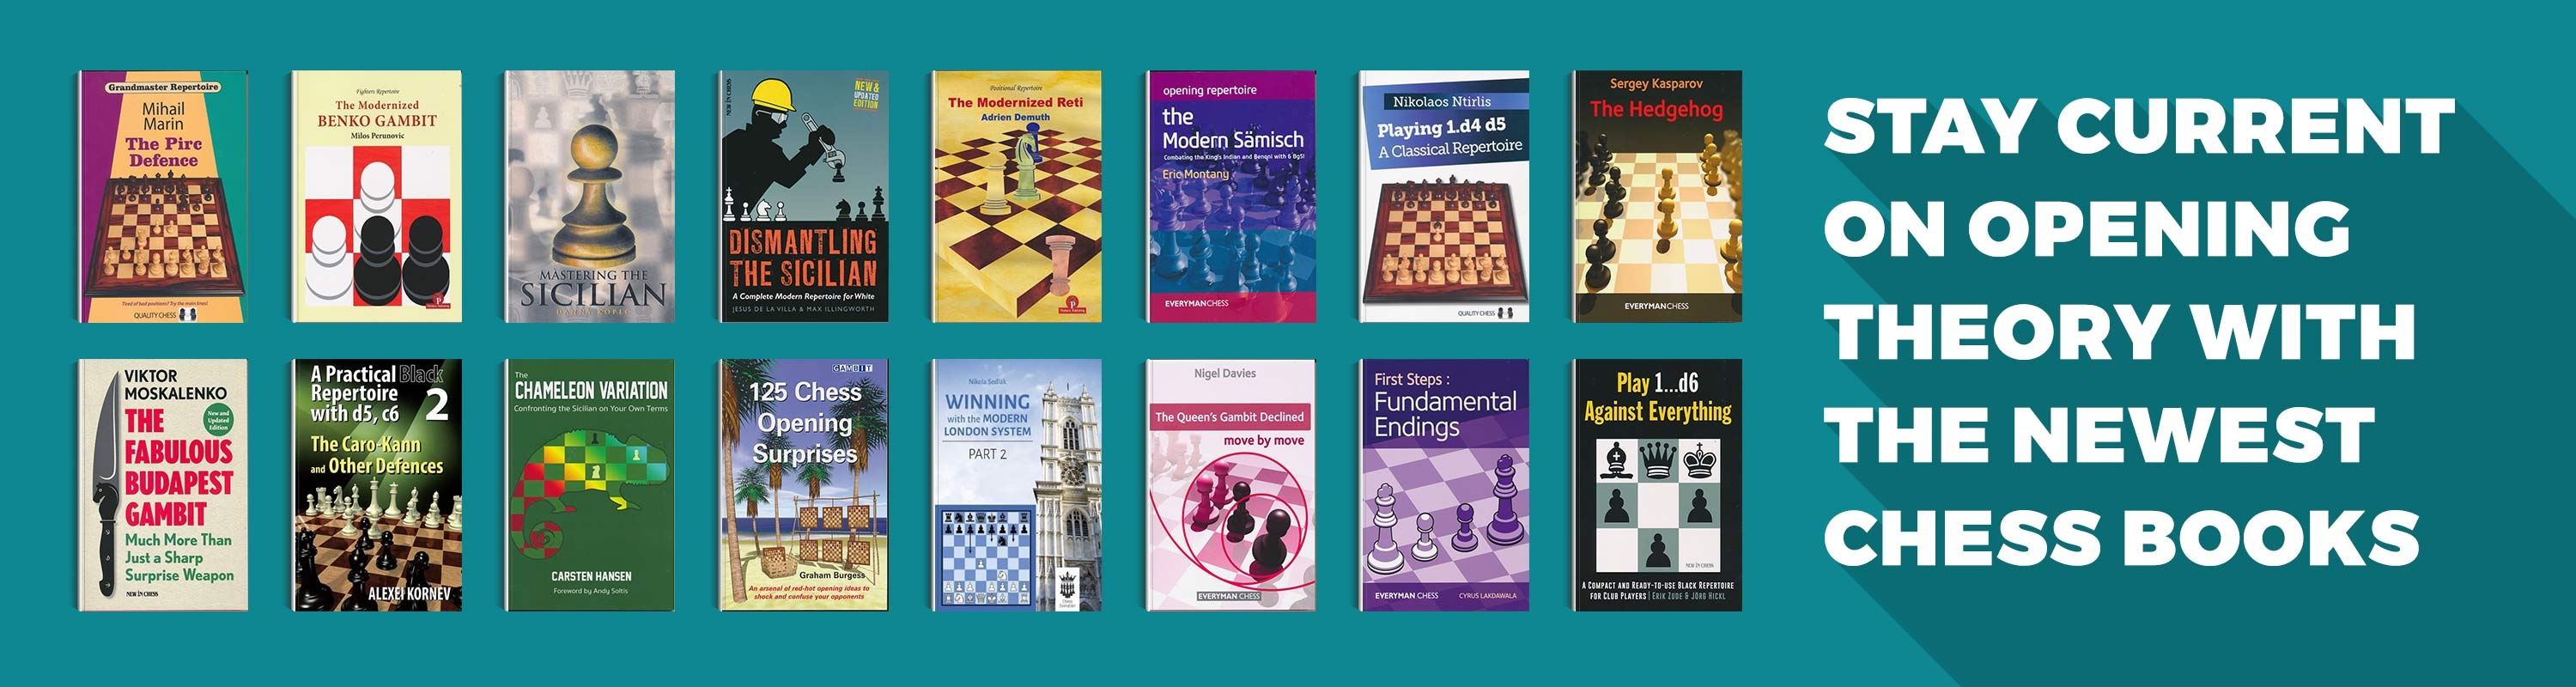 Stay current on Opening Theory with the newest Chess Books